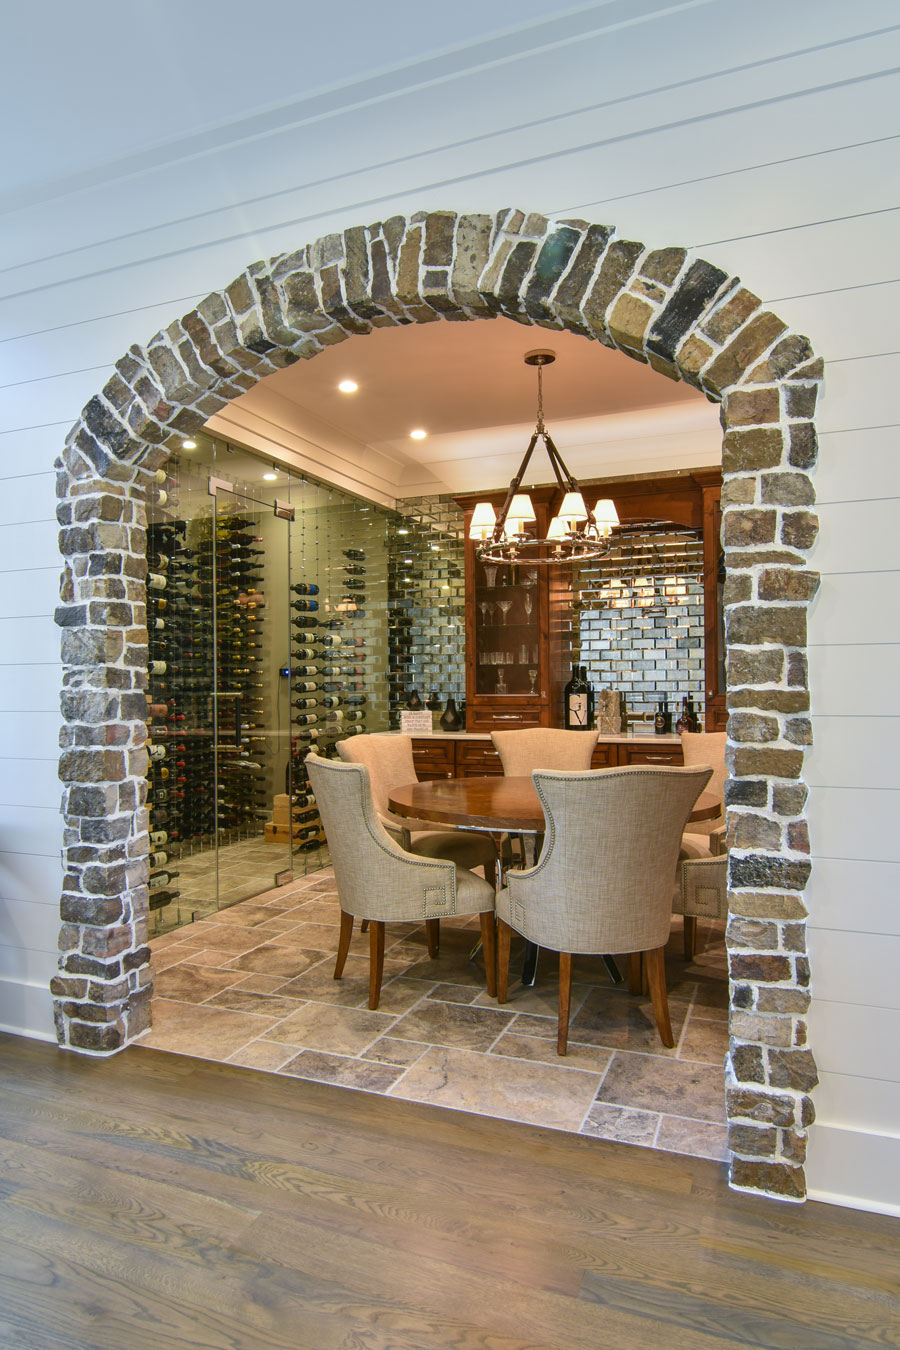 Stone arched doorway into wine tasting room